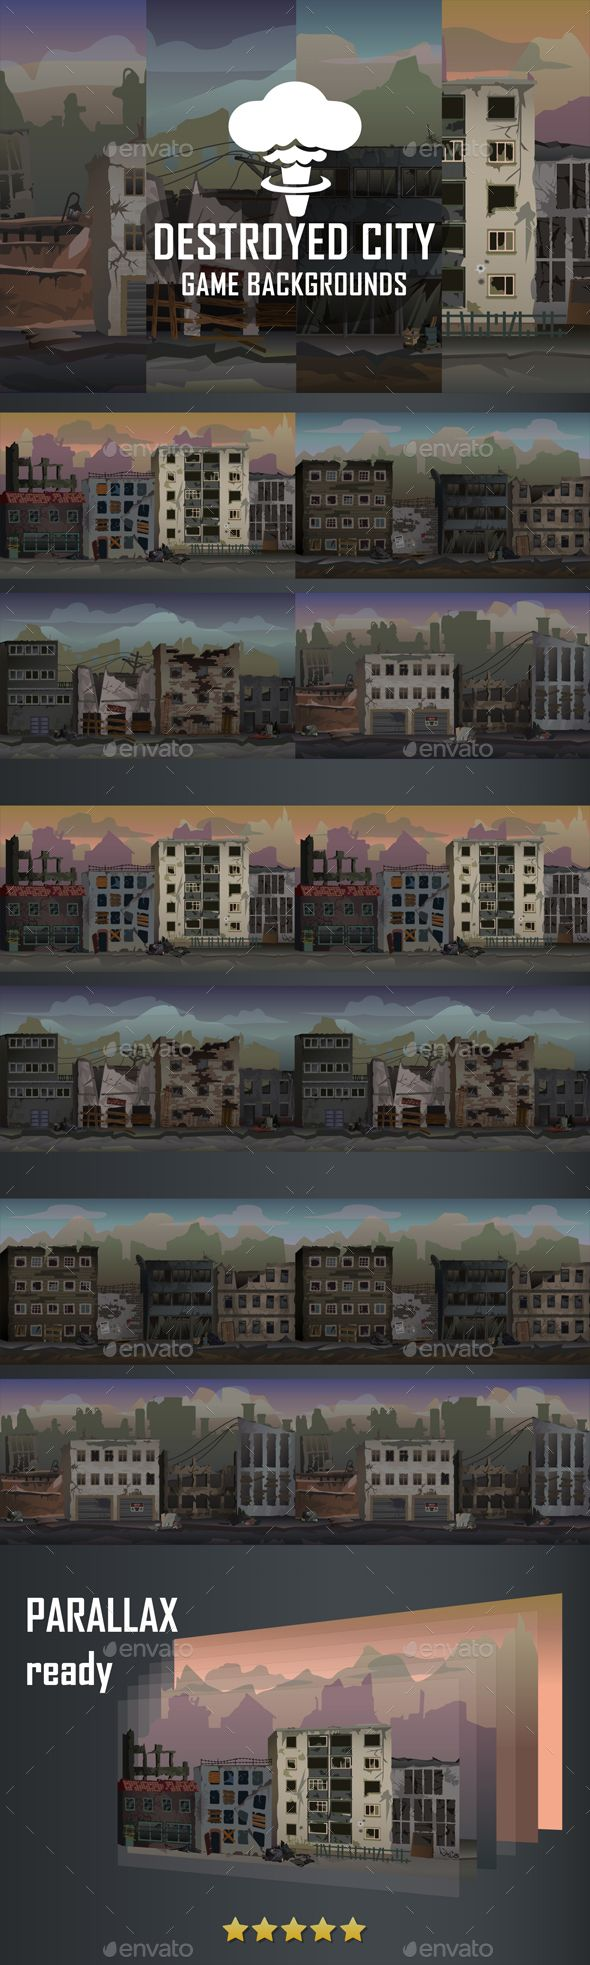 Parallax Destroyed City Backgrounds - Backgrounds Game Assets